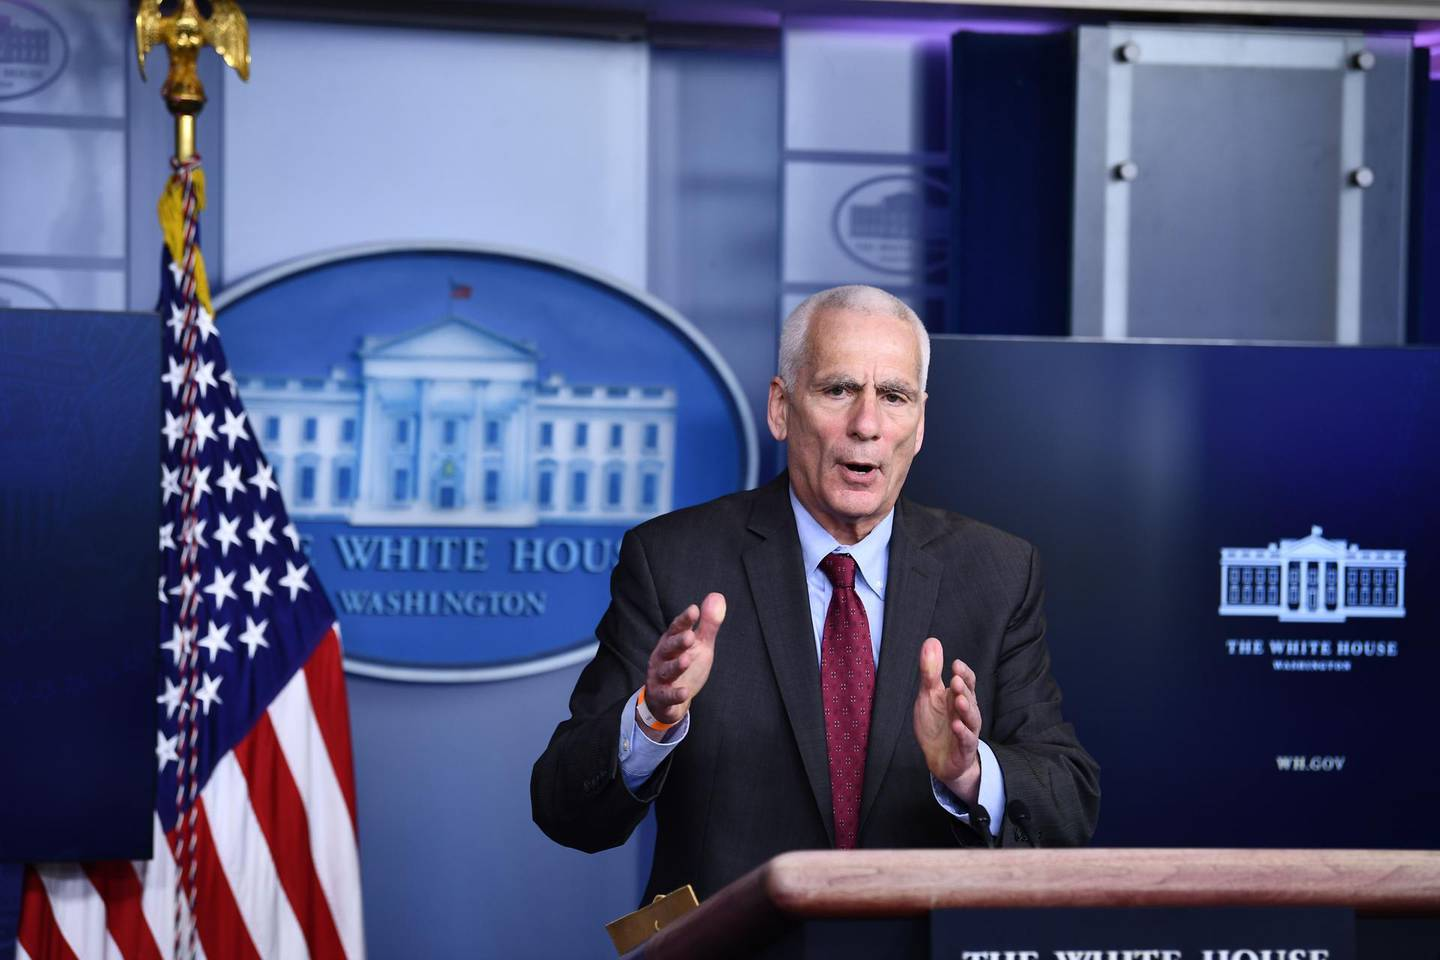 White House Council of Economic Advisors member Jared Bernstein talks to reporters during the daily briefing at the White House, in the Brady Press Briefing Room on February 05, 2021 in Washington, DC.  / AFP / Brendan Smialowski